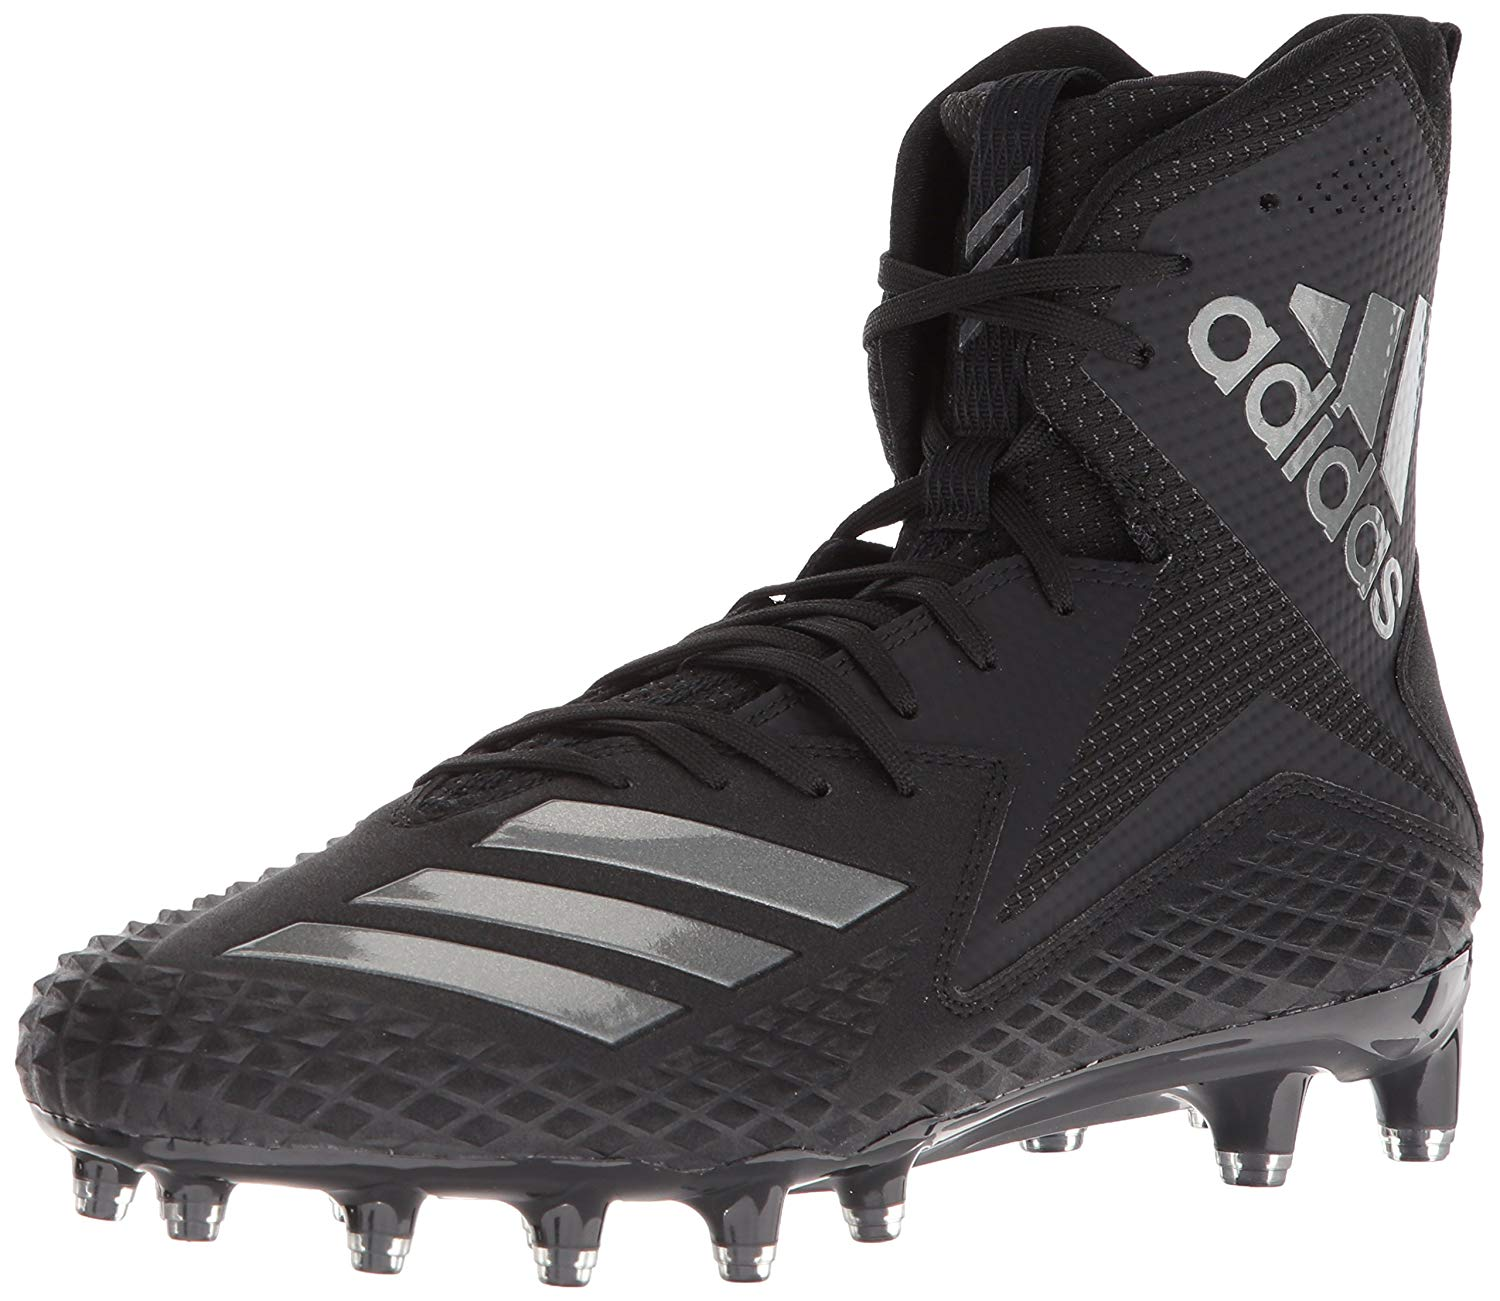 outlet store 287fe a5eaa Adidas Mens FREAK X CARBON HIGH Hight Top Lace Up Soccer Sneaker